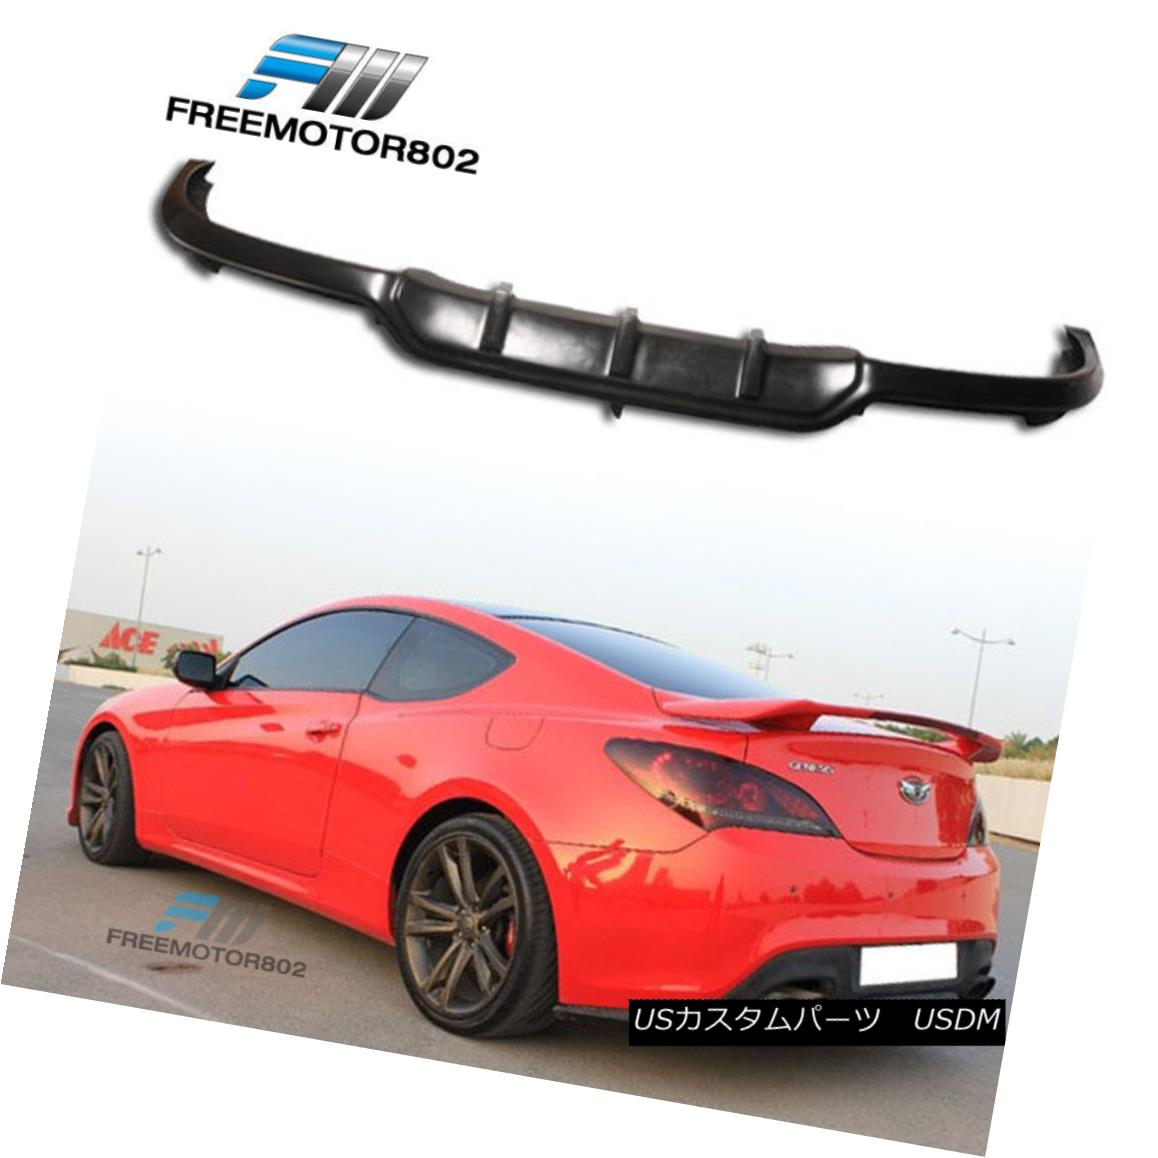 エアロパーツ Black PolyUrethane Rear Bumper Lips Bodykits Fit for 10-12 Hyundai Genesis Coupe ブラックポリウレタンリアバンパーリップスボディキット10-12 Hyundai Genesis Coupe